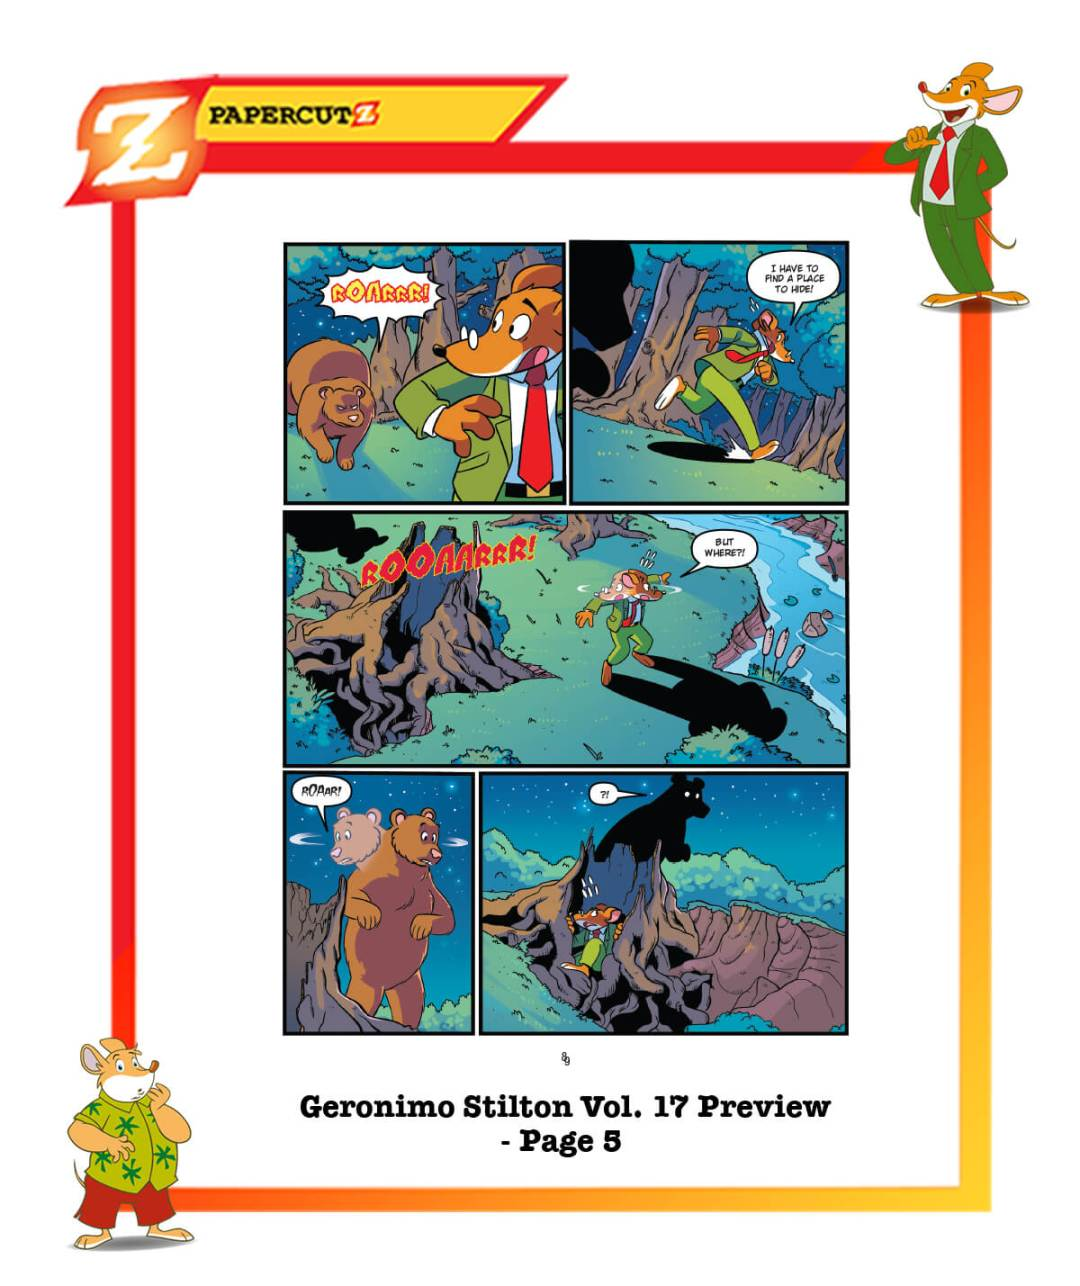 geronimo_stilton_017_preview_page05